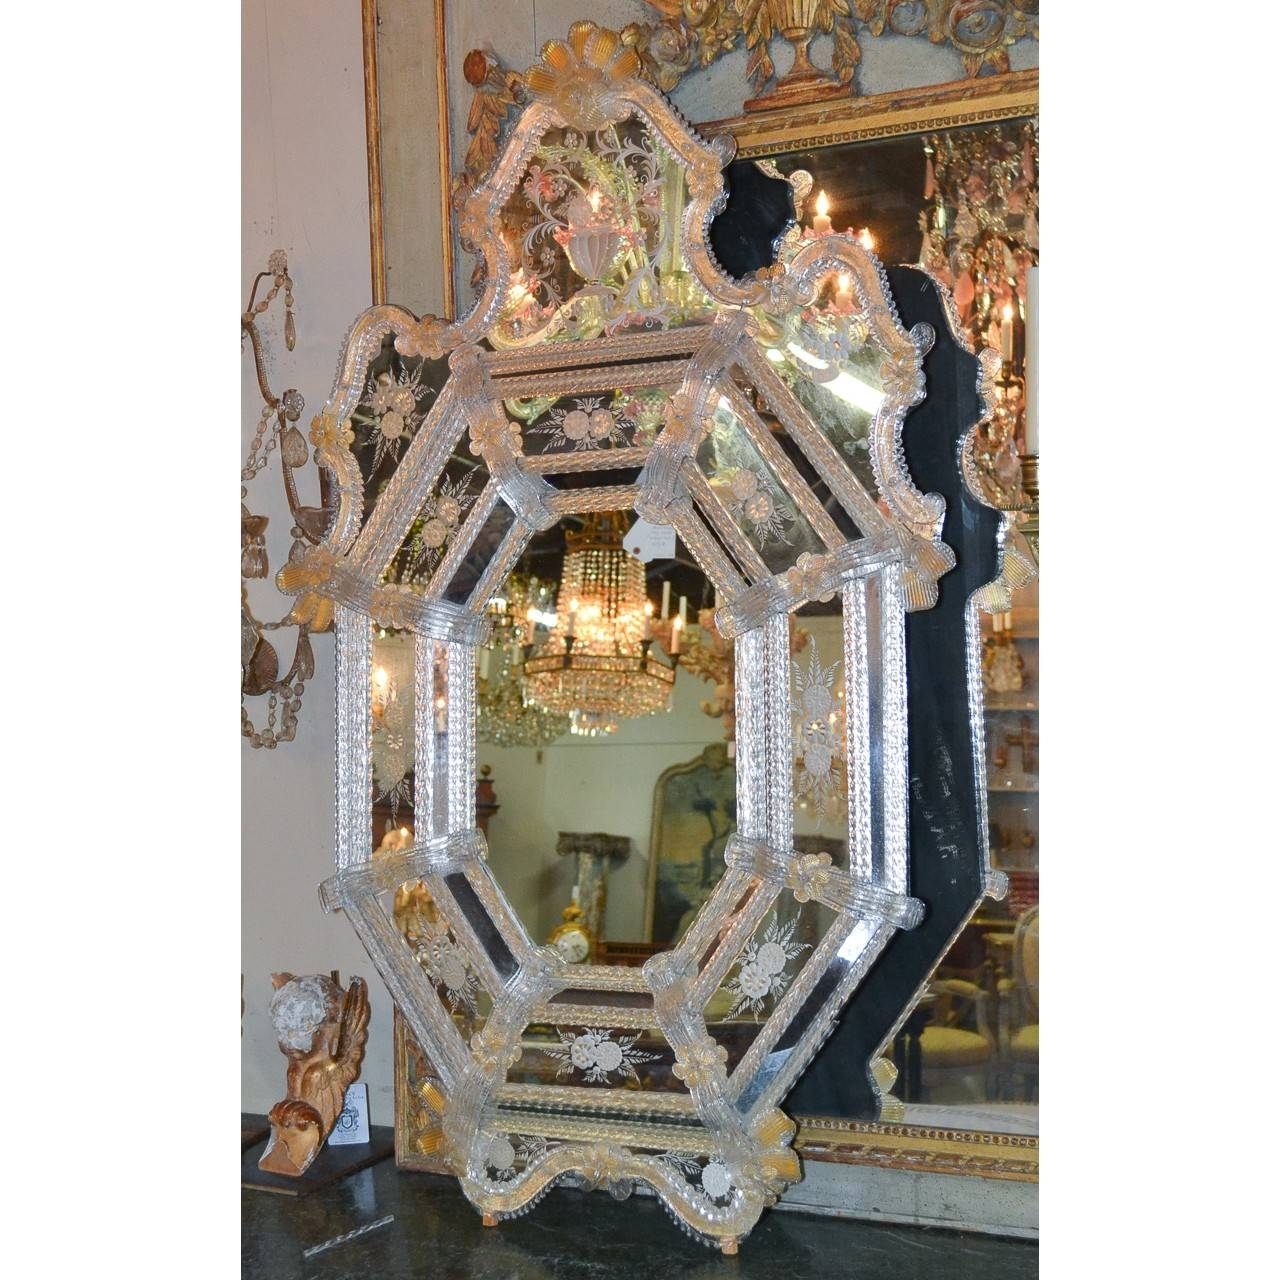 Beautiful Antique Venetian Etched Glass Mirror - Legacy Antiques intended for Venetian Etched Glass Mirrors (Image 4 of 15)